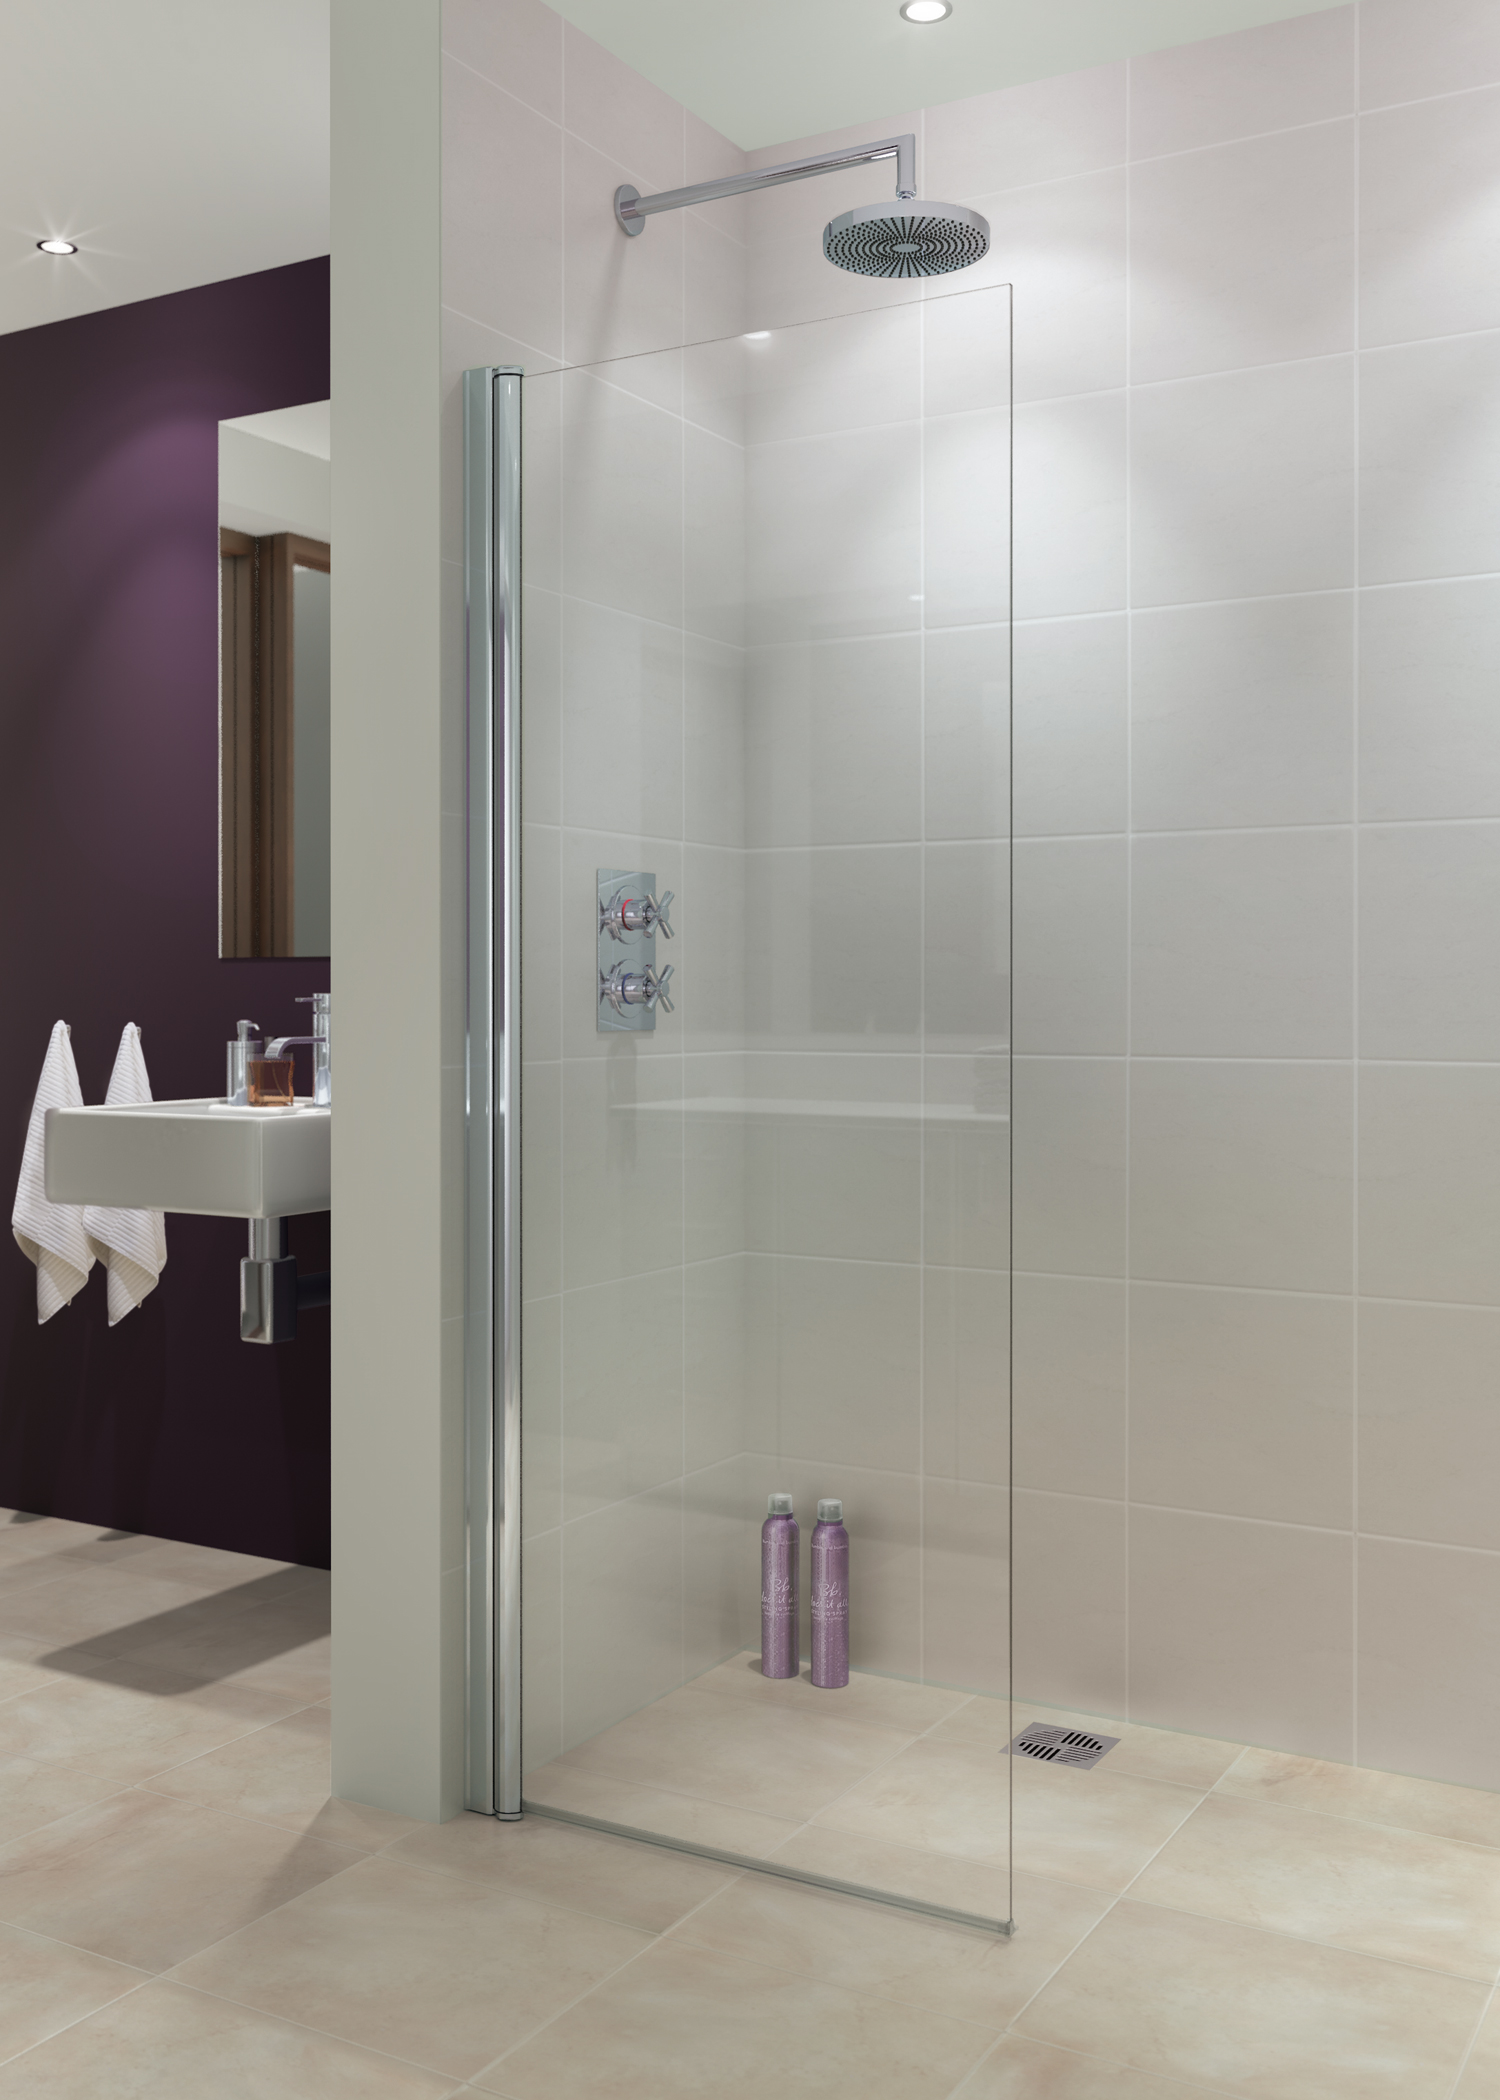 Helpful hints to make the most of limited bathroom space for Limited space storage solutions